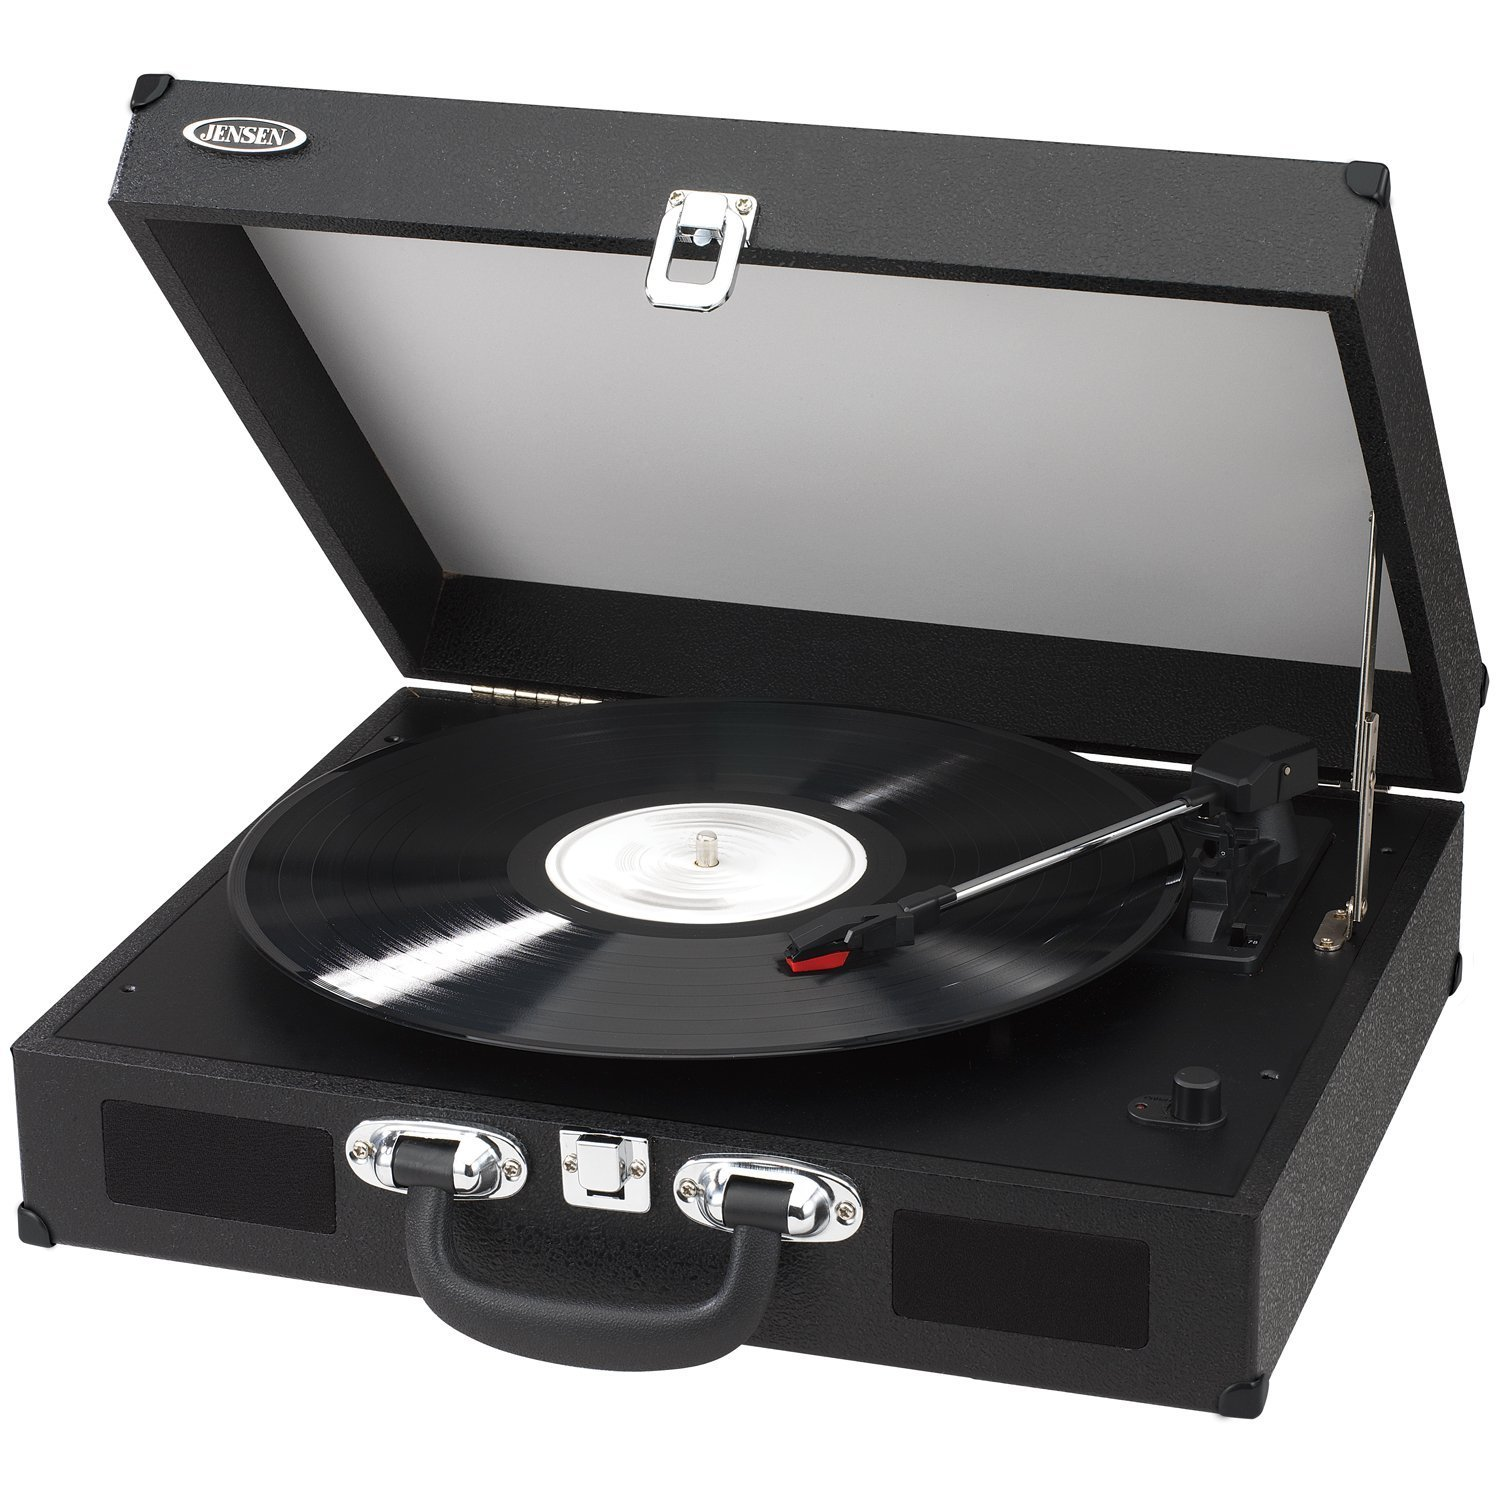 Record Player, Jensen Jta-410-blk Vinyl Modern Small Portable Stereo Turntable